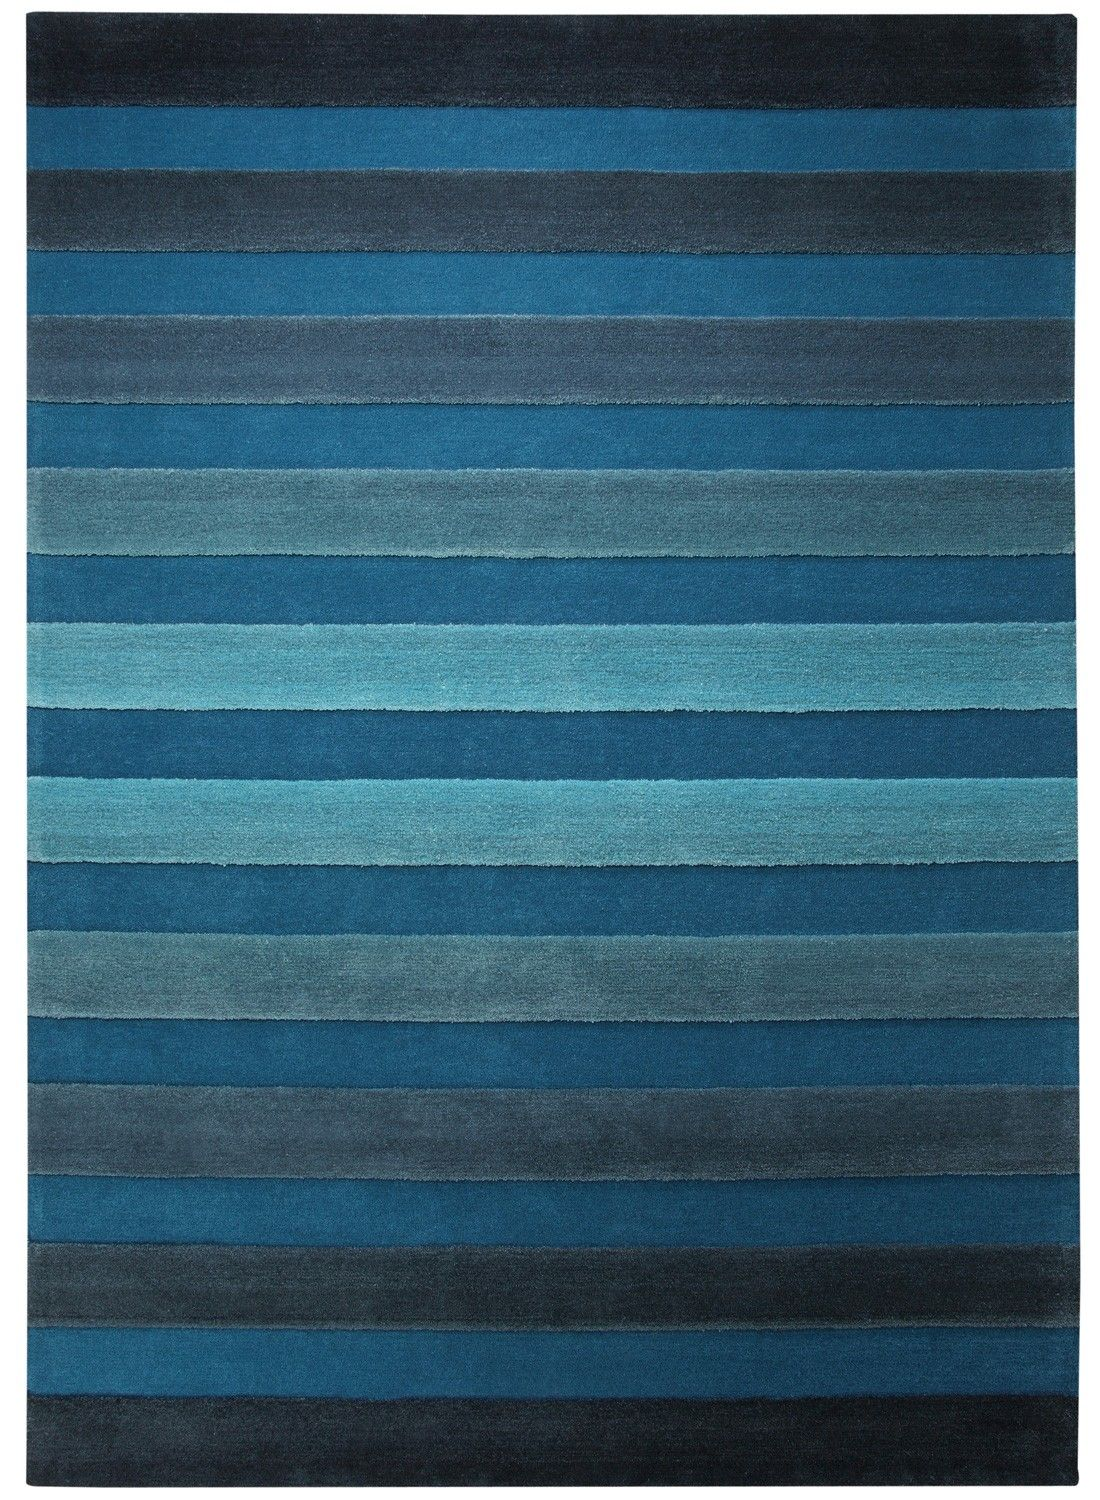 Tapis Salon Bleu Petrole Tapis Bleu Cross Walk Bleu De La Collection Esprit Deco Salon